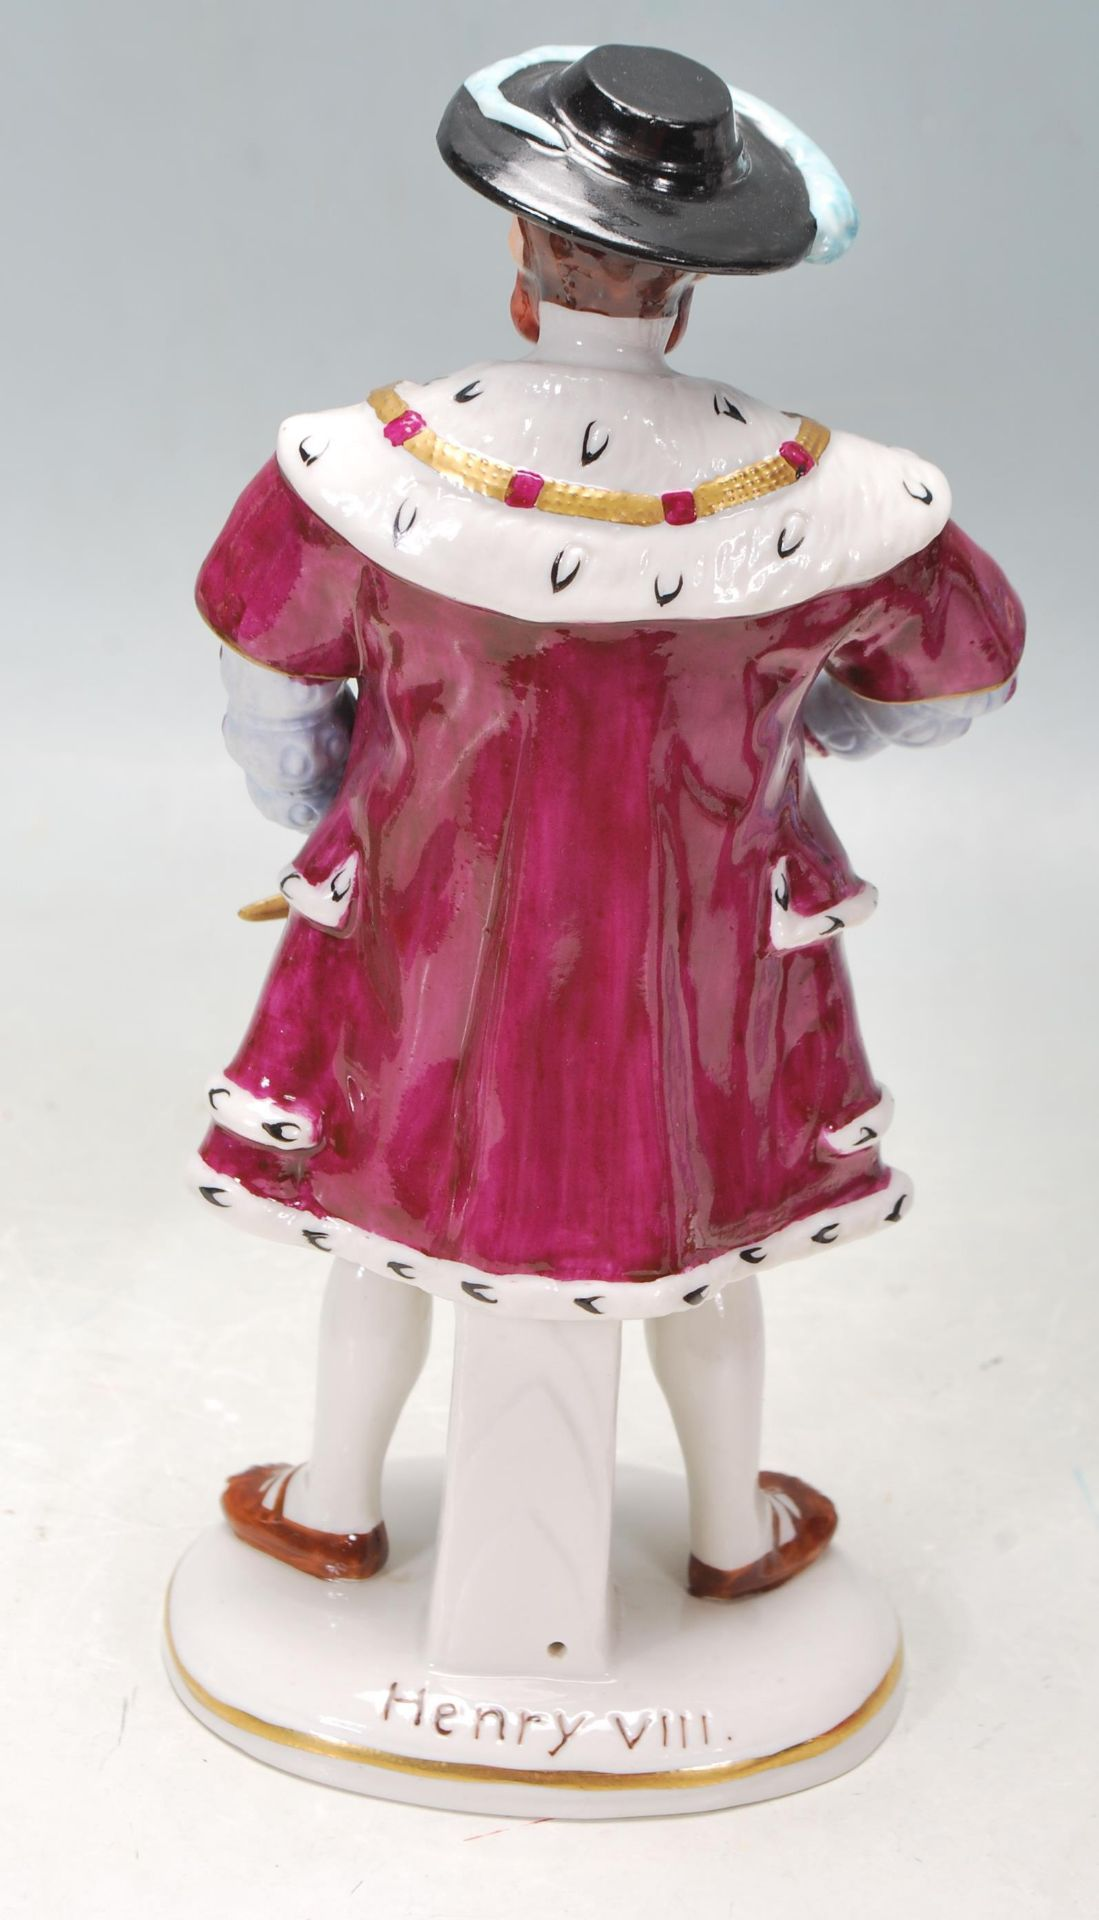 COLLECTION OF SEVEN SITZEDORF CERAMIC PORCELAIN FIGURINES OF HENRY VIII AND HIS SIX WIVES - Image 7 of 8